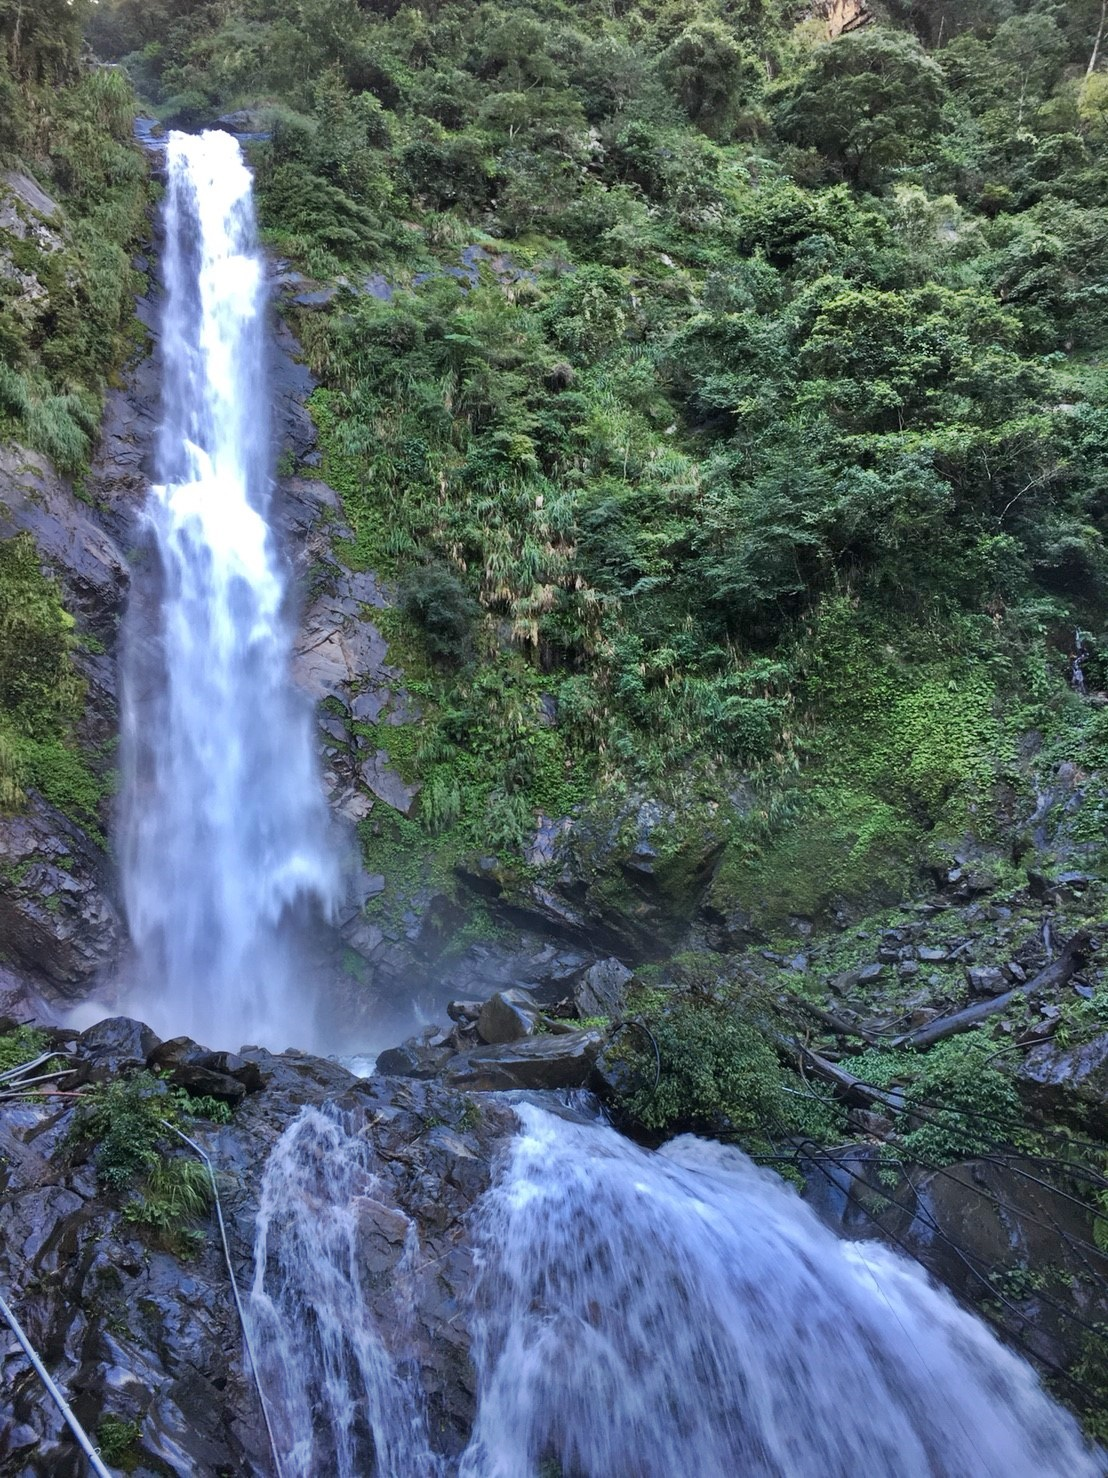 The Rainbow Waterfall in Dongpu Hot Spring Area. (Image: Chang Hsi-Hsin)